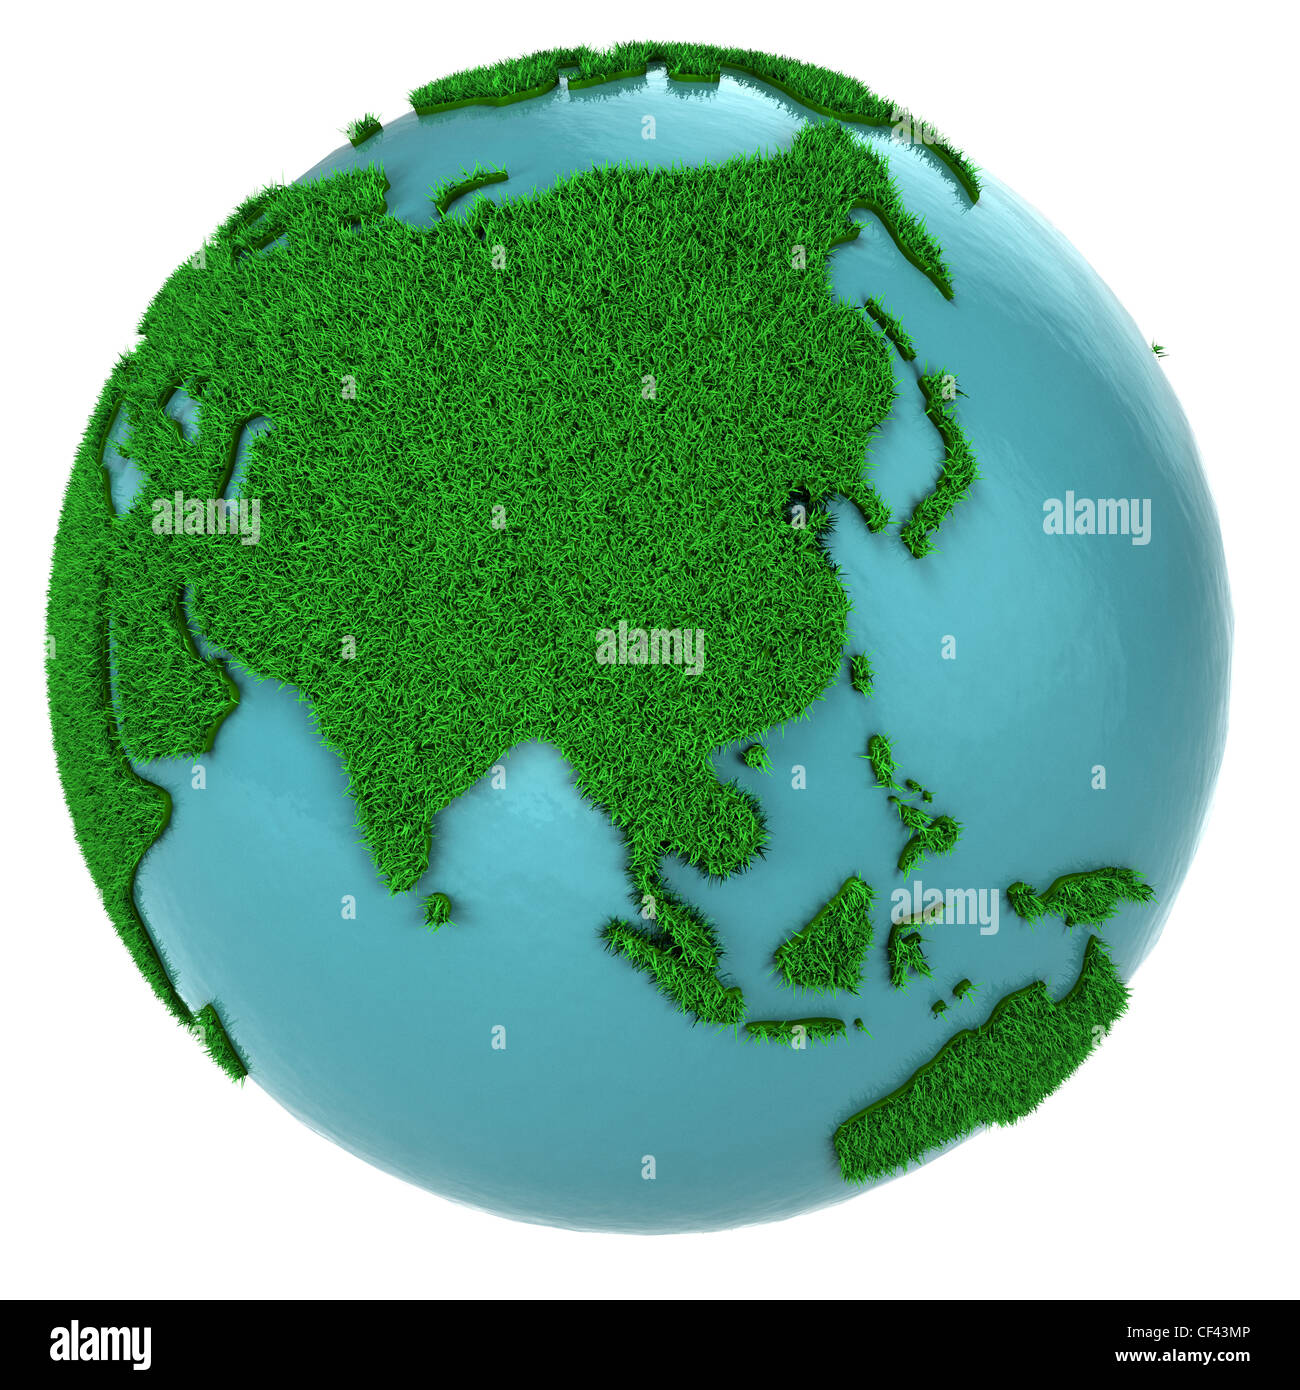 Globe of grass and water, Asia part, isolated on white background - Stock Image